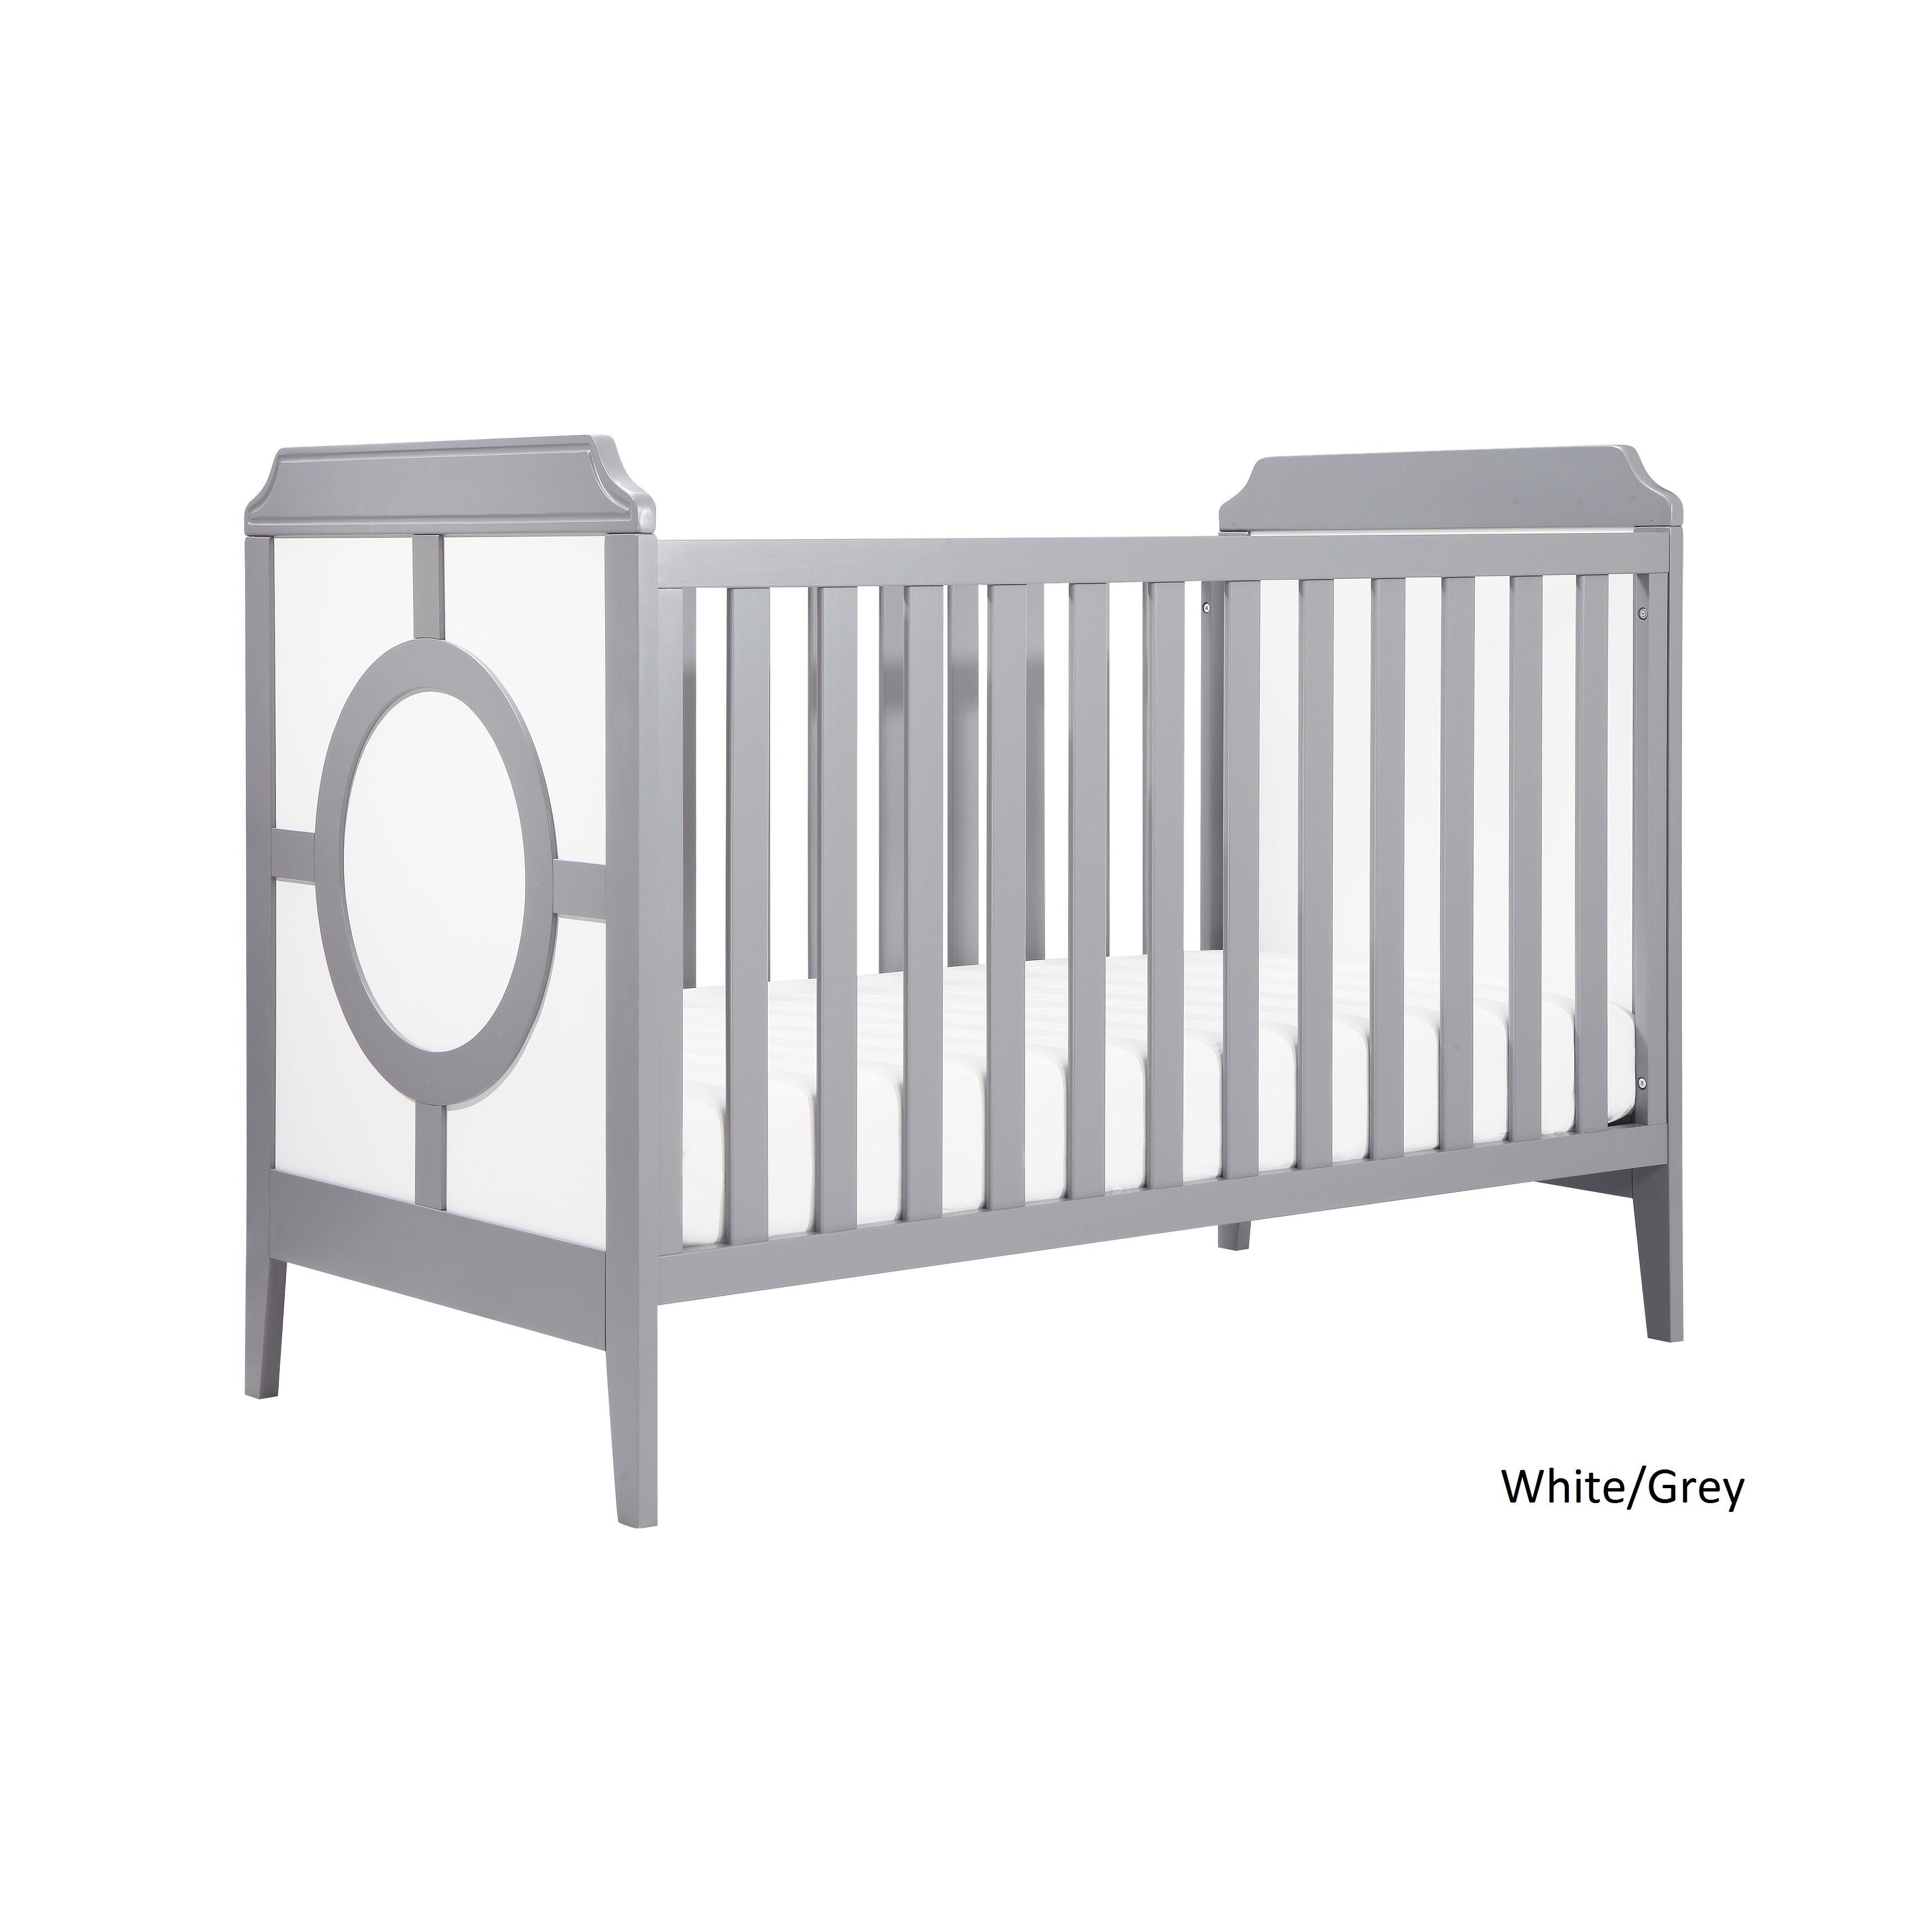 home jenny lind product crib convertible poppy today garden shipping regency in davinci overstock free cribs